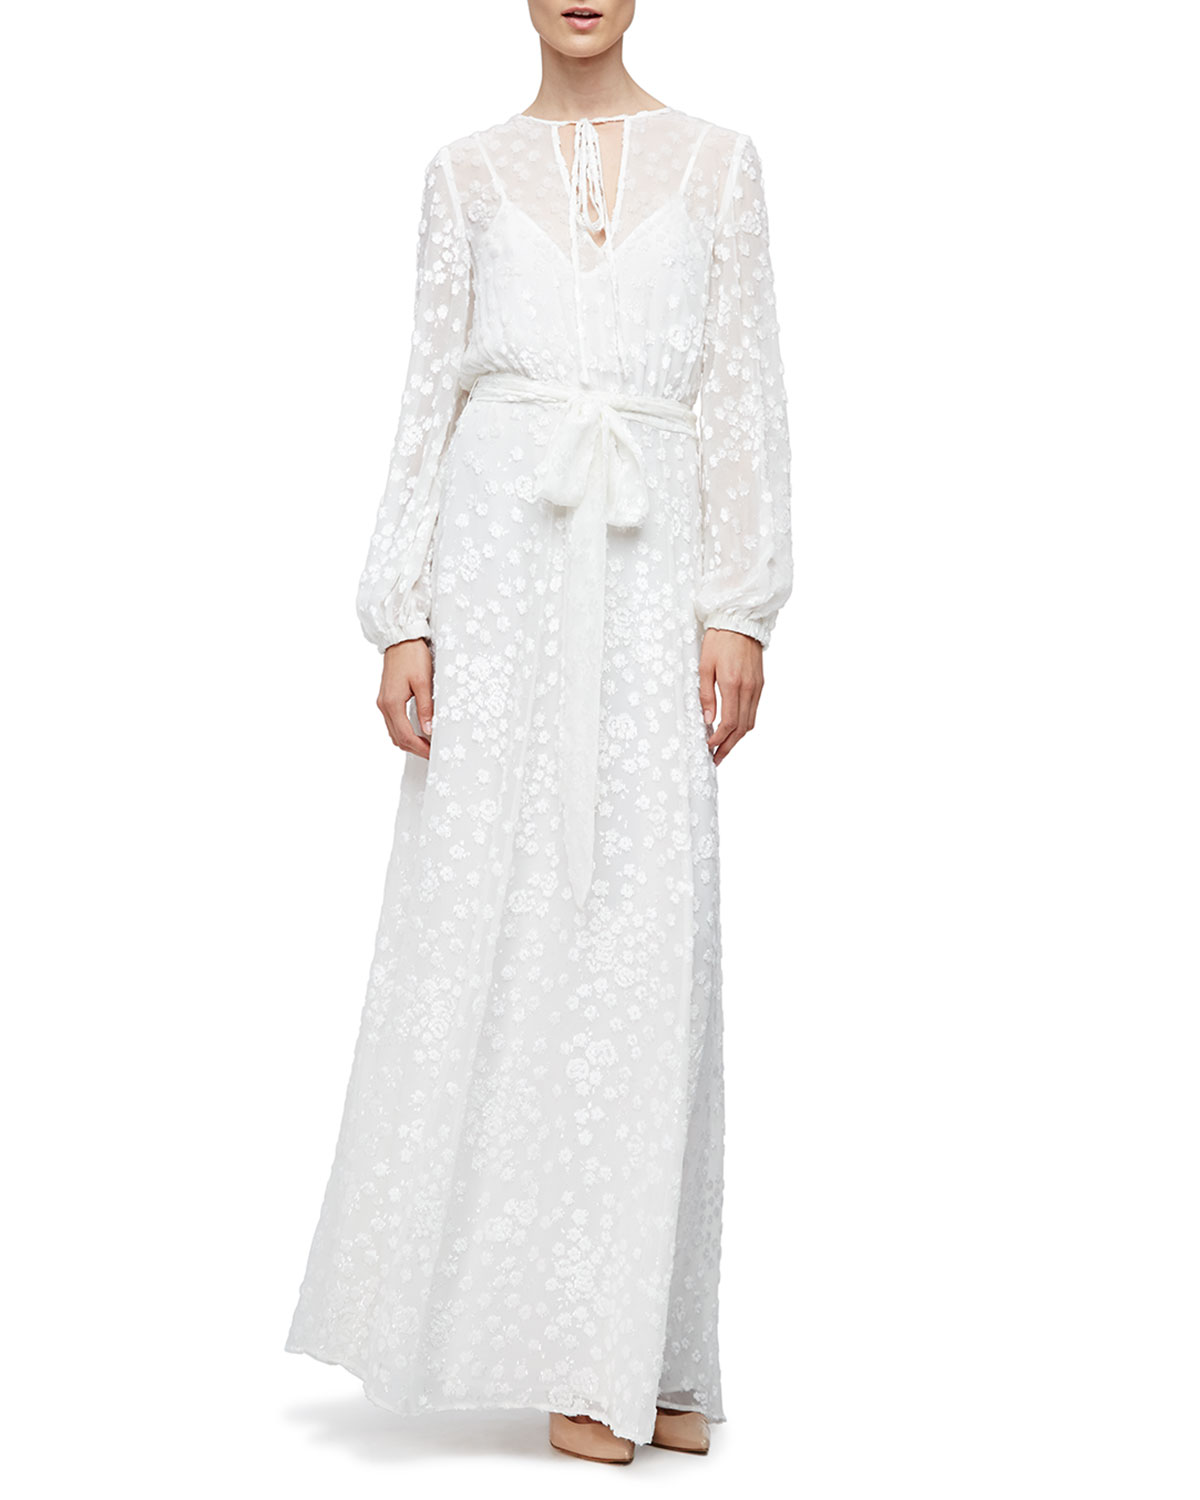 68c592d3707 Co Long-Sleeve Floral-Embroidered Maxi Peasant Dress